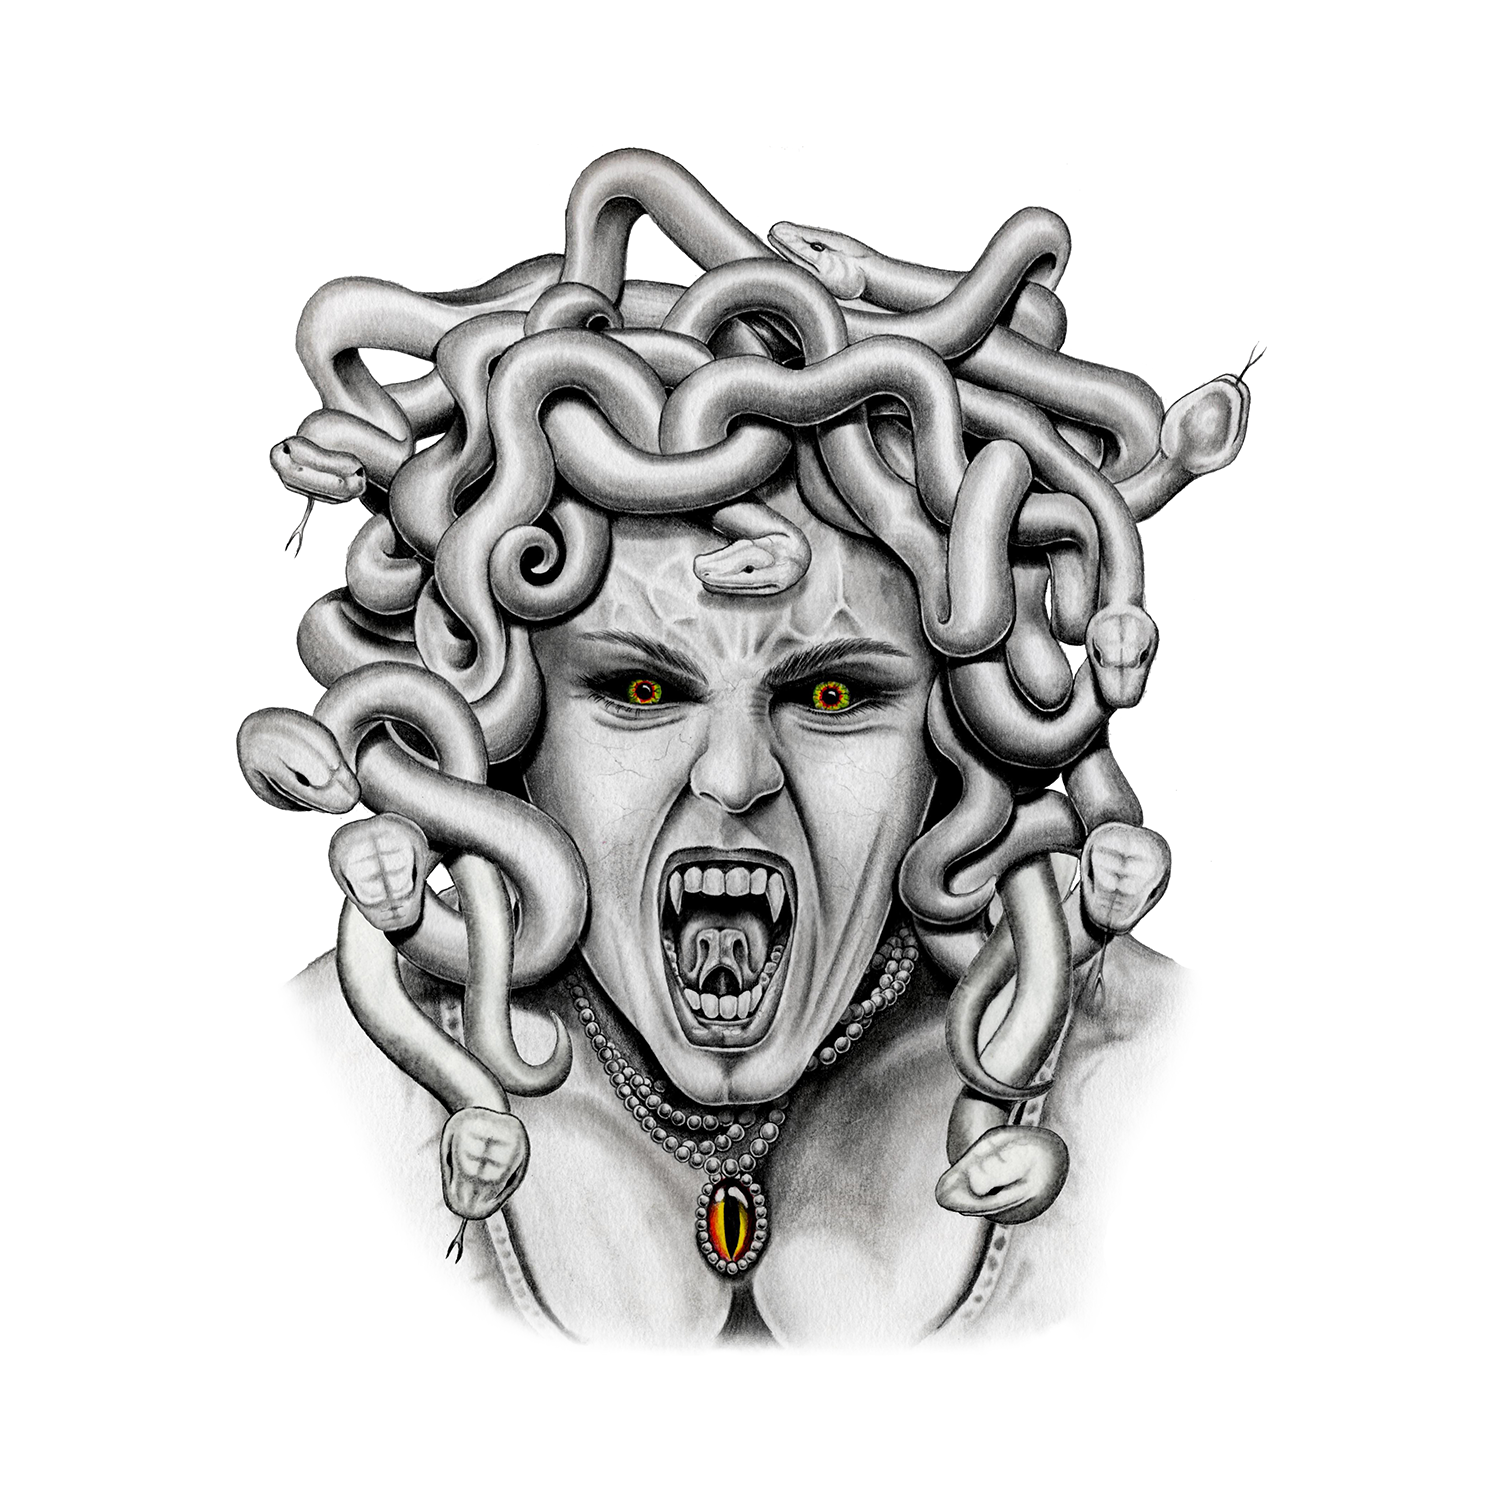 Medusa Drawing Png Free Medusa Drawing Png Transparent Images 87620 Pngio Medusa drawing stock photos and images. medusa drawing png transparent